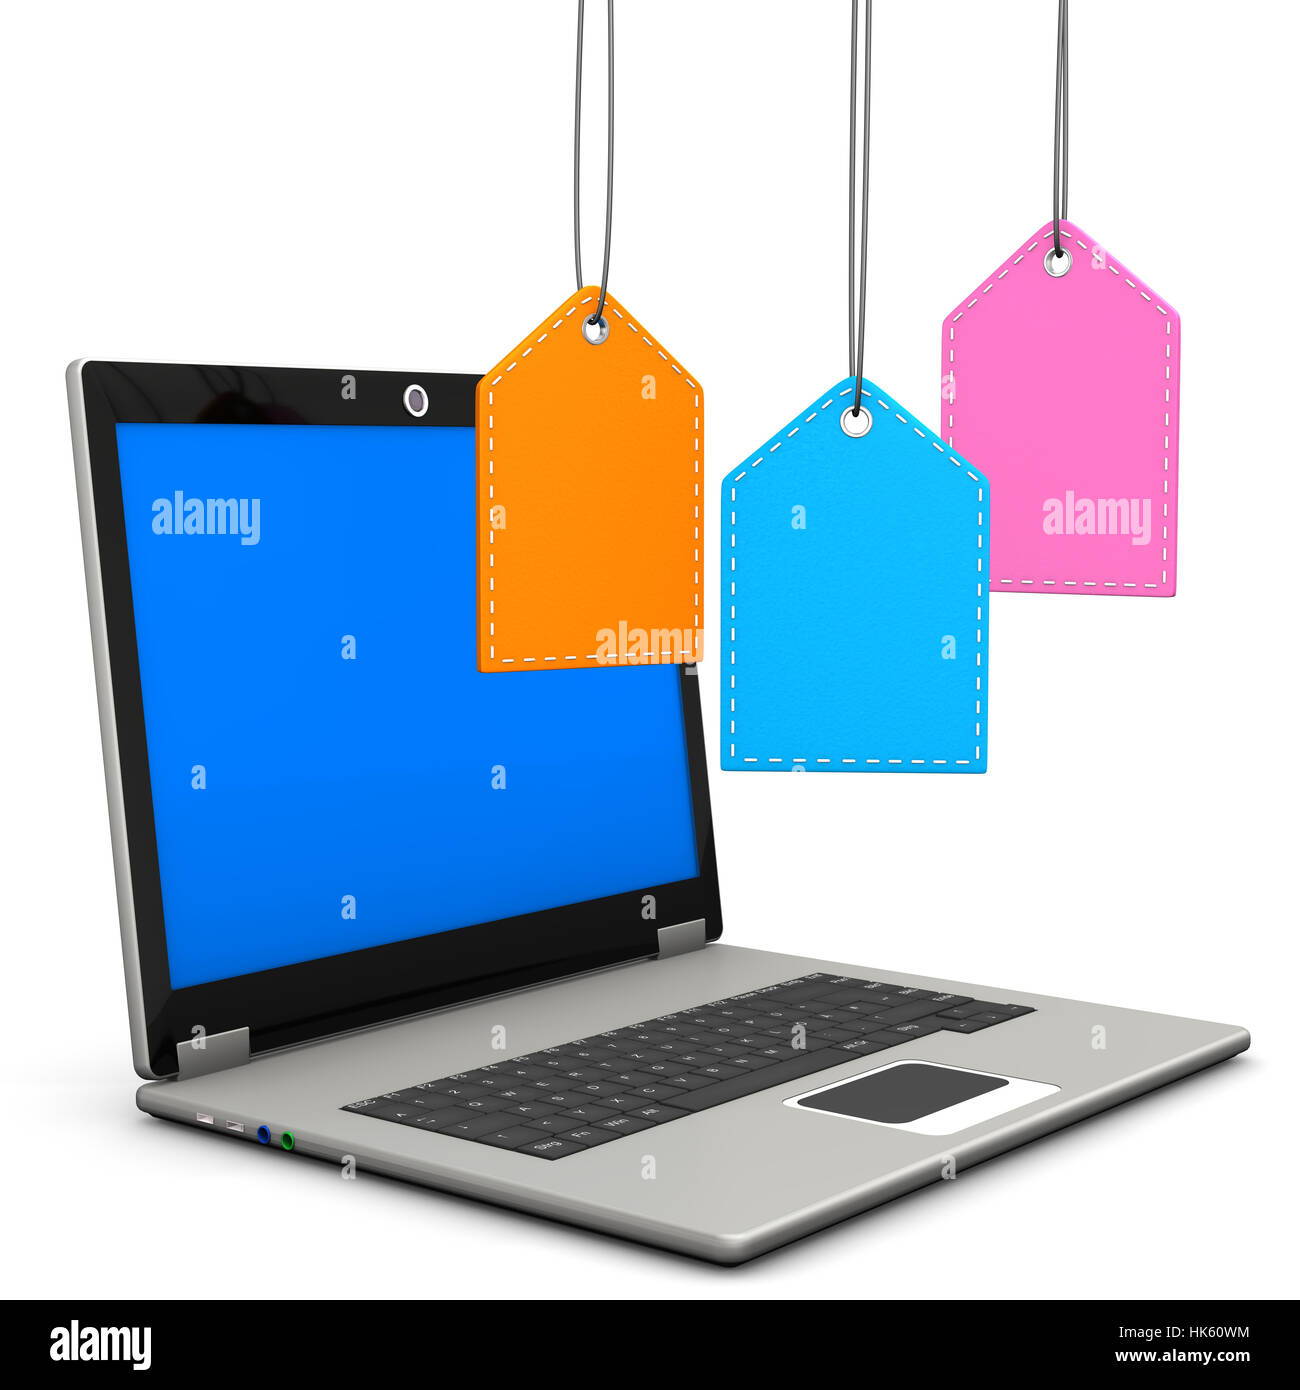 blue, laptop, notebook, computers, computer, PC, fashion, colour, illustration, - Stock Image